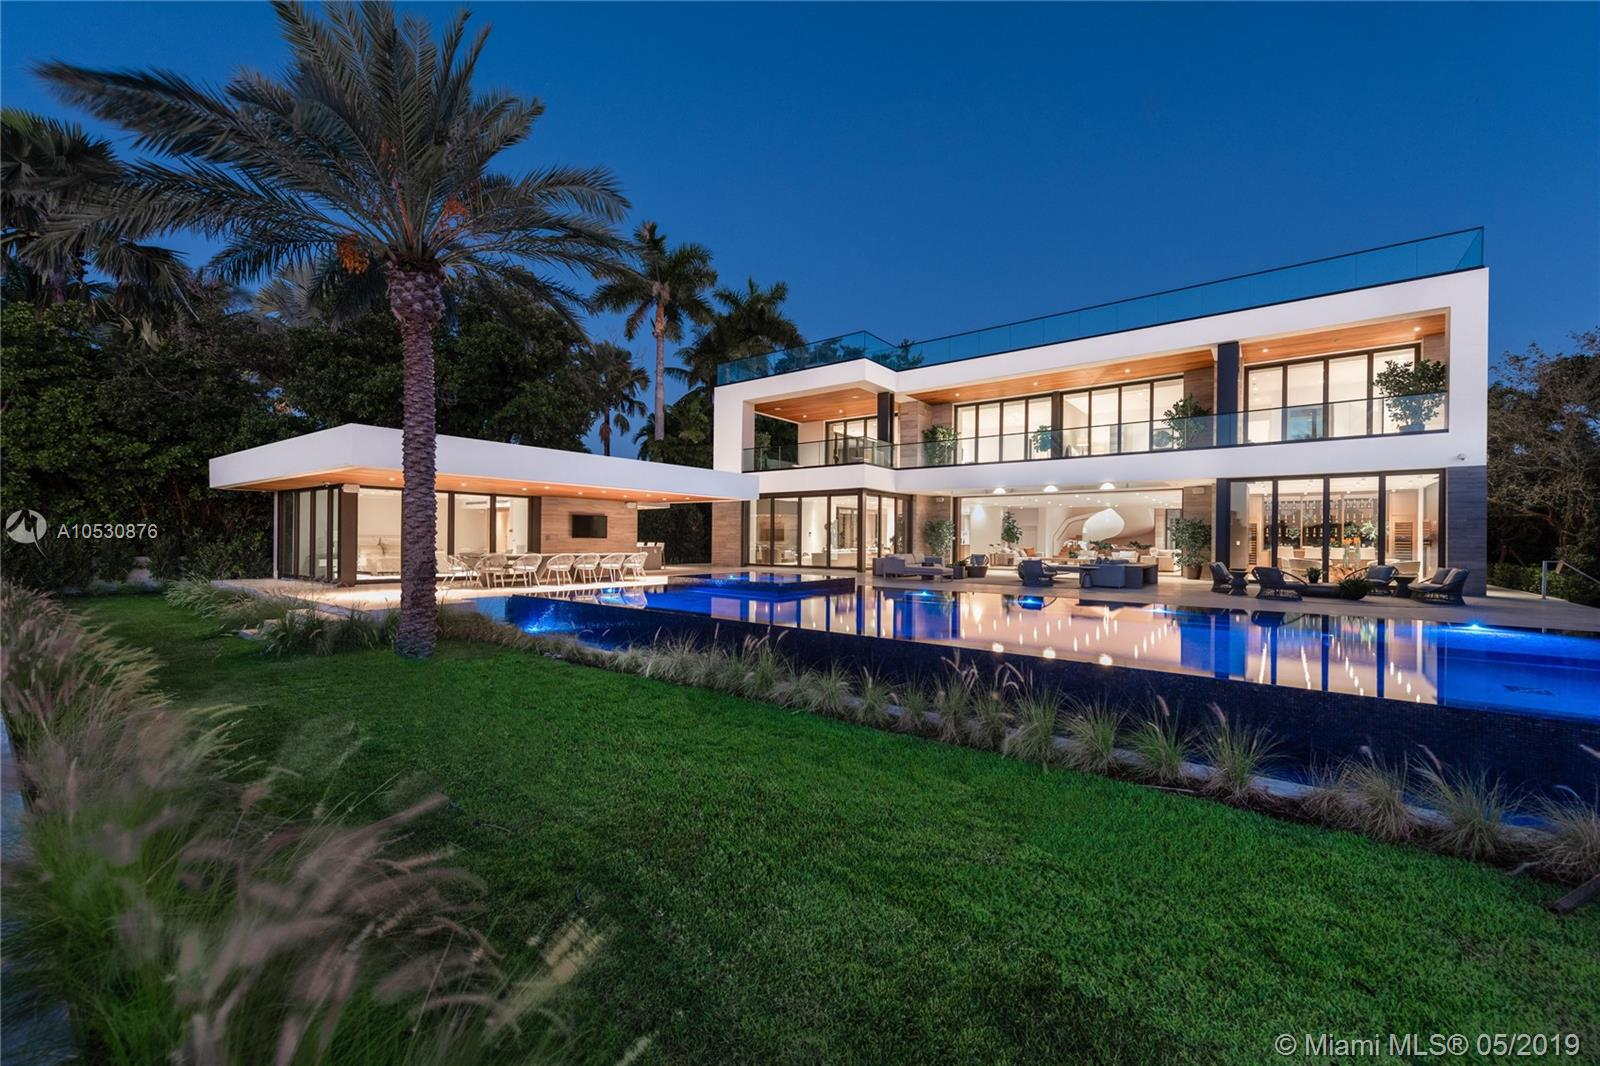 Miami Beach'S Newest Ultra-Luxurious Mega-Mansion! Built In 2018, The Contemporary Masterpiece Sits On 27, 608-Sf Lot With 112-Ft Of Wf & Offers Splendid Water Views Of Biscayne Bay. Home Features 3, 000-Sf Of Rooftop Decks, 4-Bed 4-Bath Guesthouse With A Gym, 2 Elevators, 3-Car Garage, Cabana House With Kitchenette, Summer Kitchen, Oversized Mosaic Glass Pool With Spa, New Seawall & Pier Dock. The Main House Features 7 Beds, Plus A Dreamy Master Suite With A Large Terrace, Custom-Built Closet & Opulent Marble Bath With A Private Sun-Deck! The Living Areas Feature Wall-To-Wall Glass Doors, Theatre, Entertainment Room, High-End Italian Kitchen, Formal Dining, Family Room. Total Sf 16, 545. Opportunity To Also Buy The South Adjacent Lot +Ógé¼Gç£ 6342 N Bay Rd, For $12.5M (24, 407-Sf, 100-Ft Waterfront)